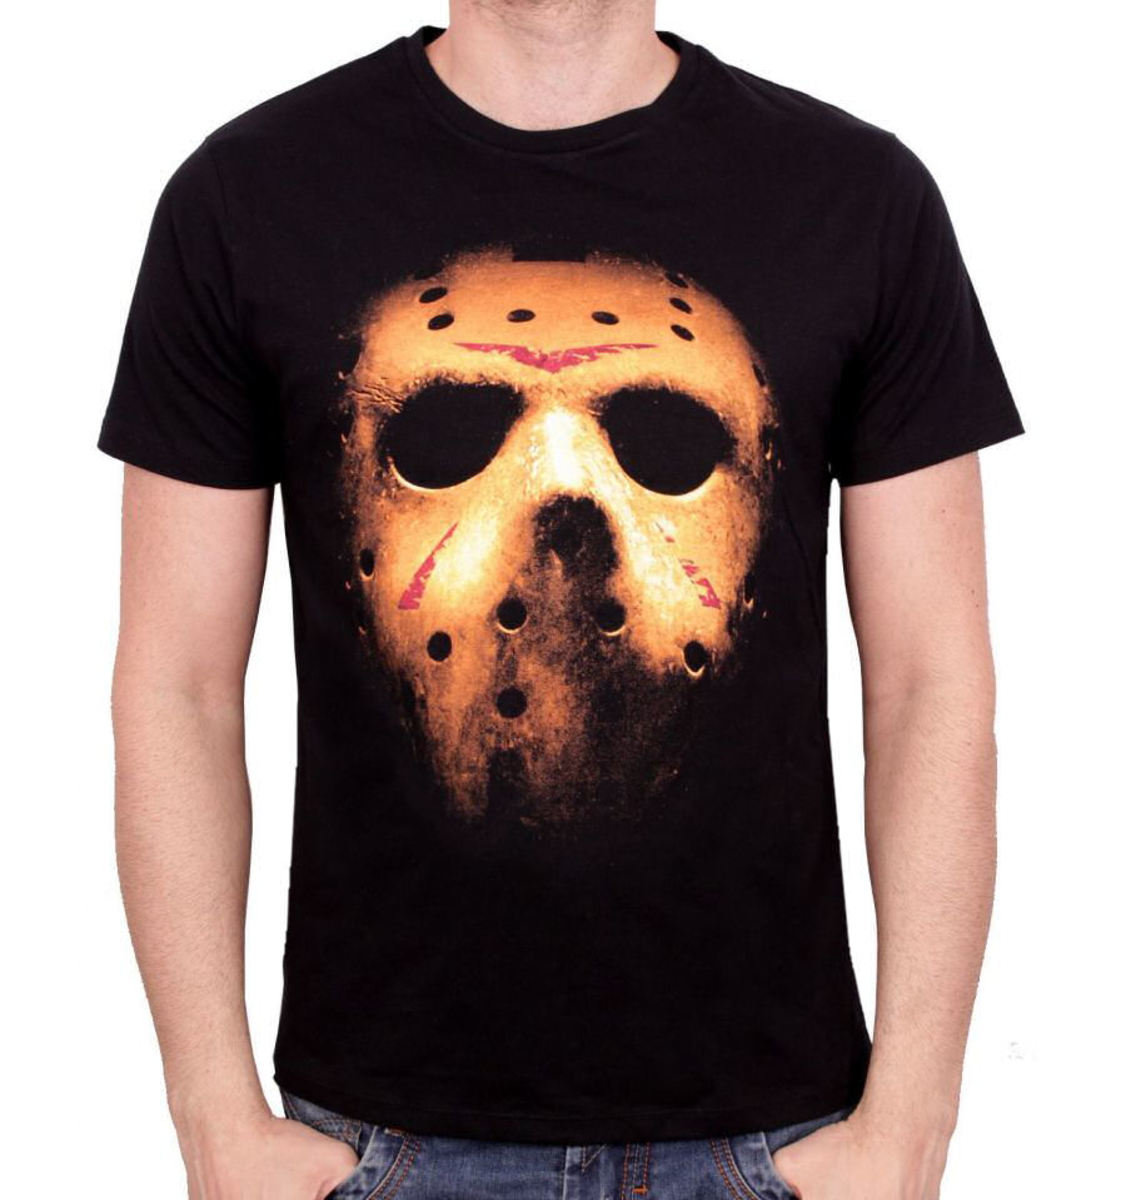 LEGEND Friday the 13th JASONS MASK černá